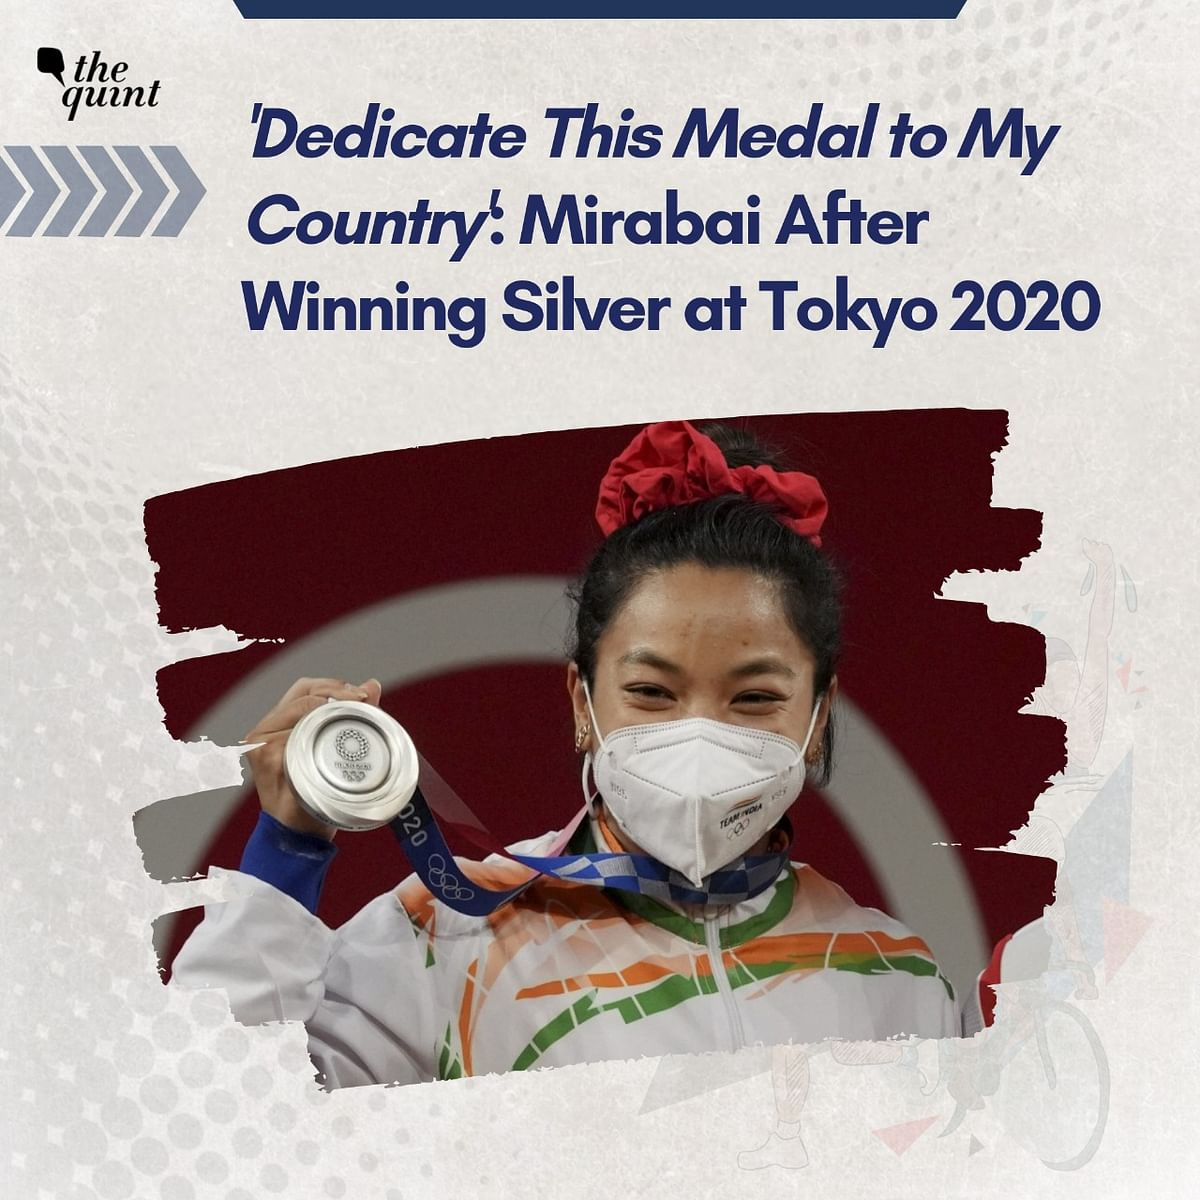 Mirabai's Silver is Like Gold Medal for Us, Says Family